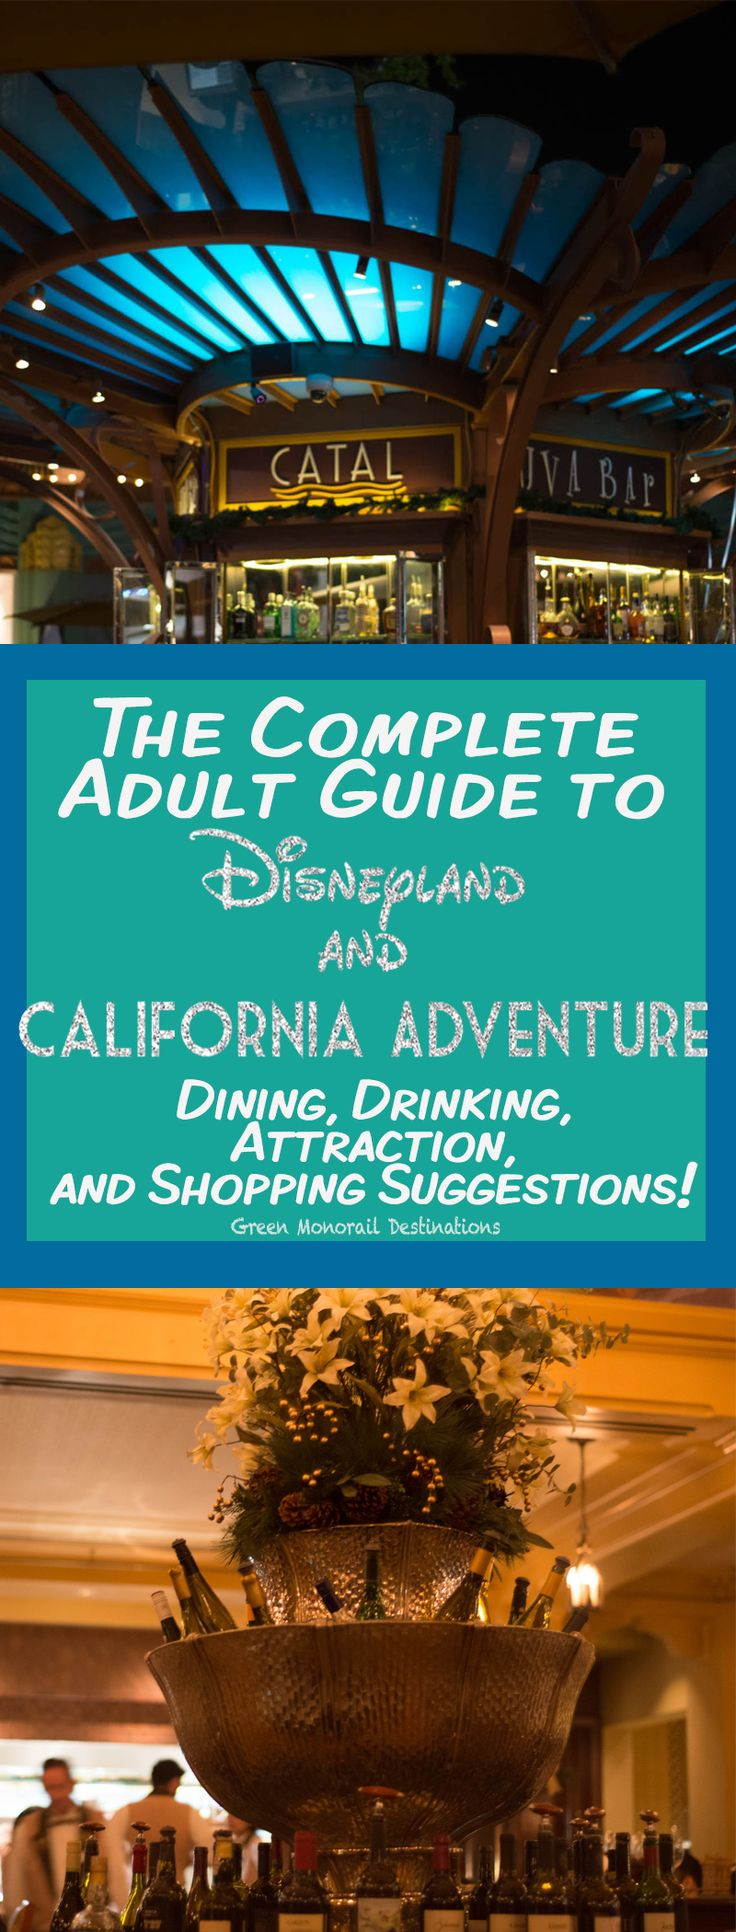 California Map Disney%0A The Complete Adult Guide to Disneyland and Disney World  Shopping  Dining   Drinking